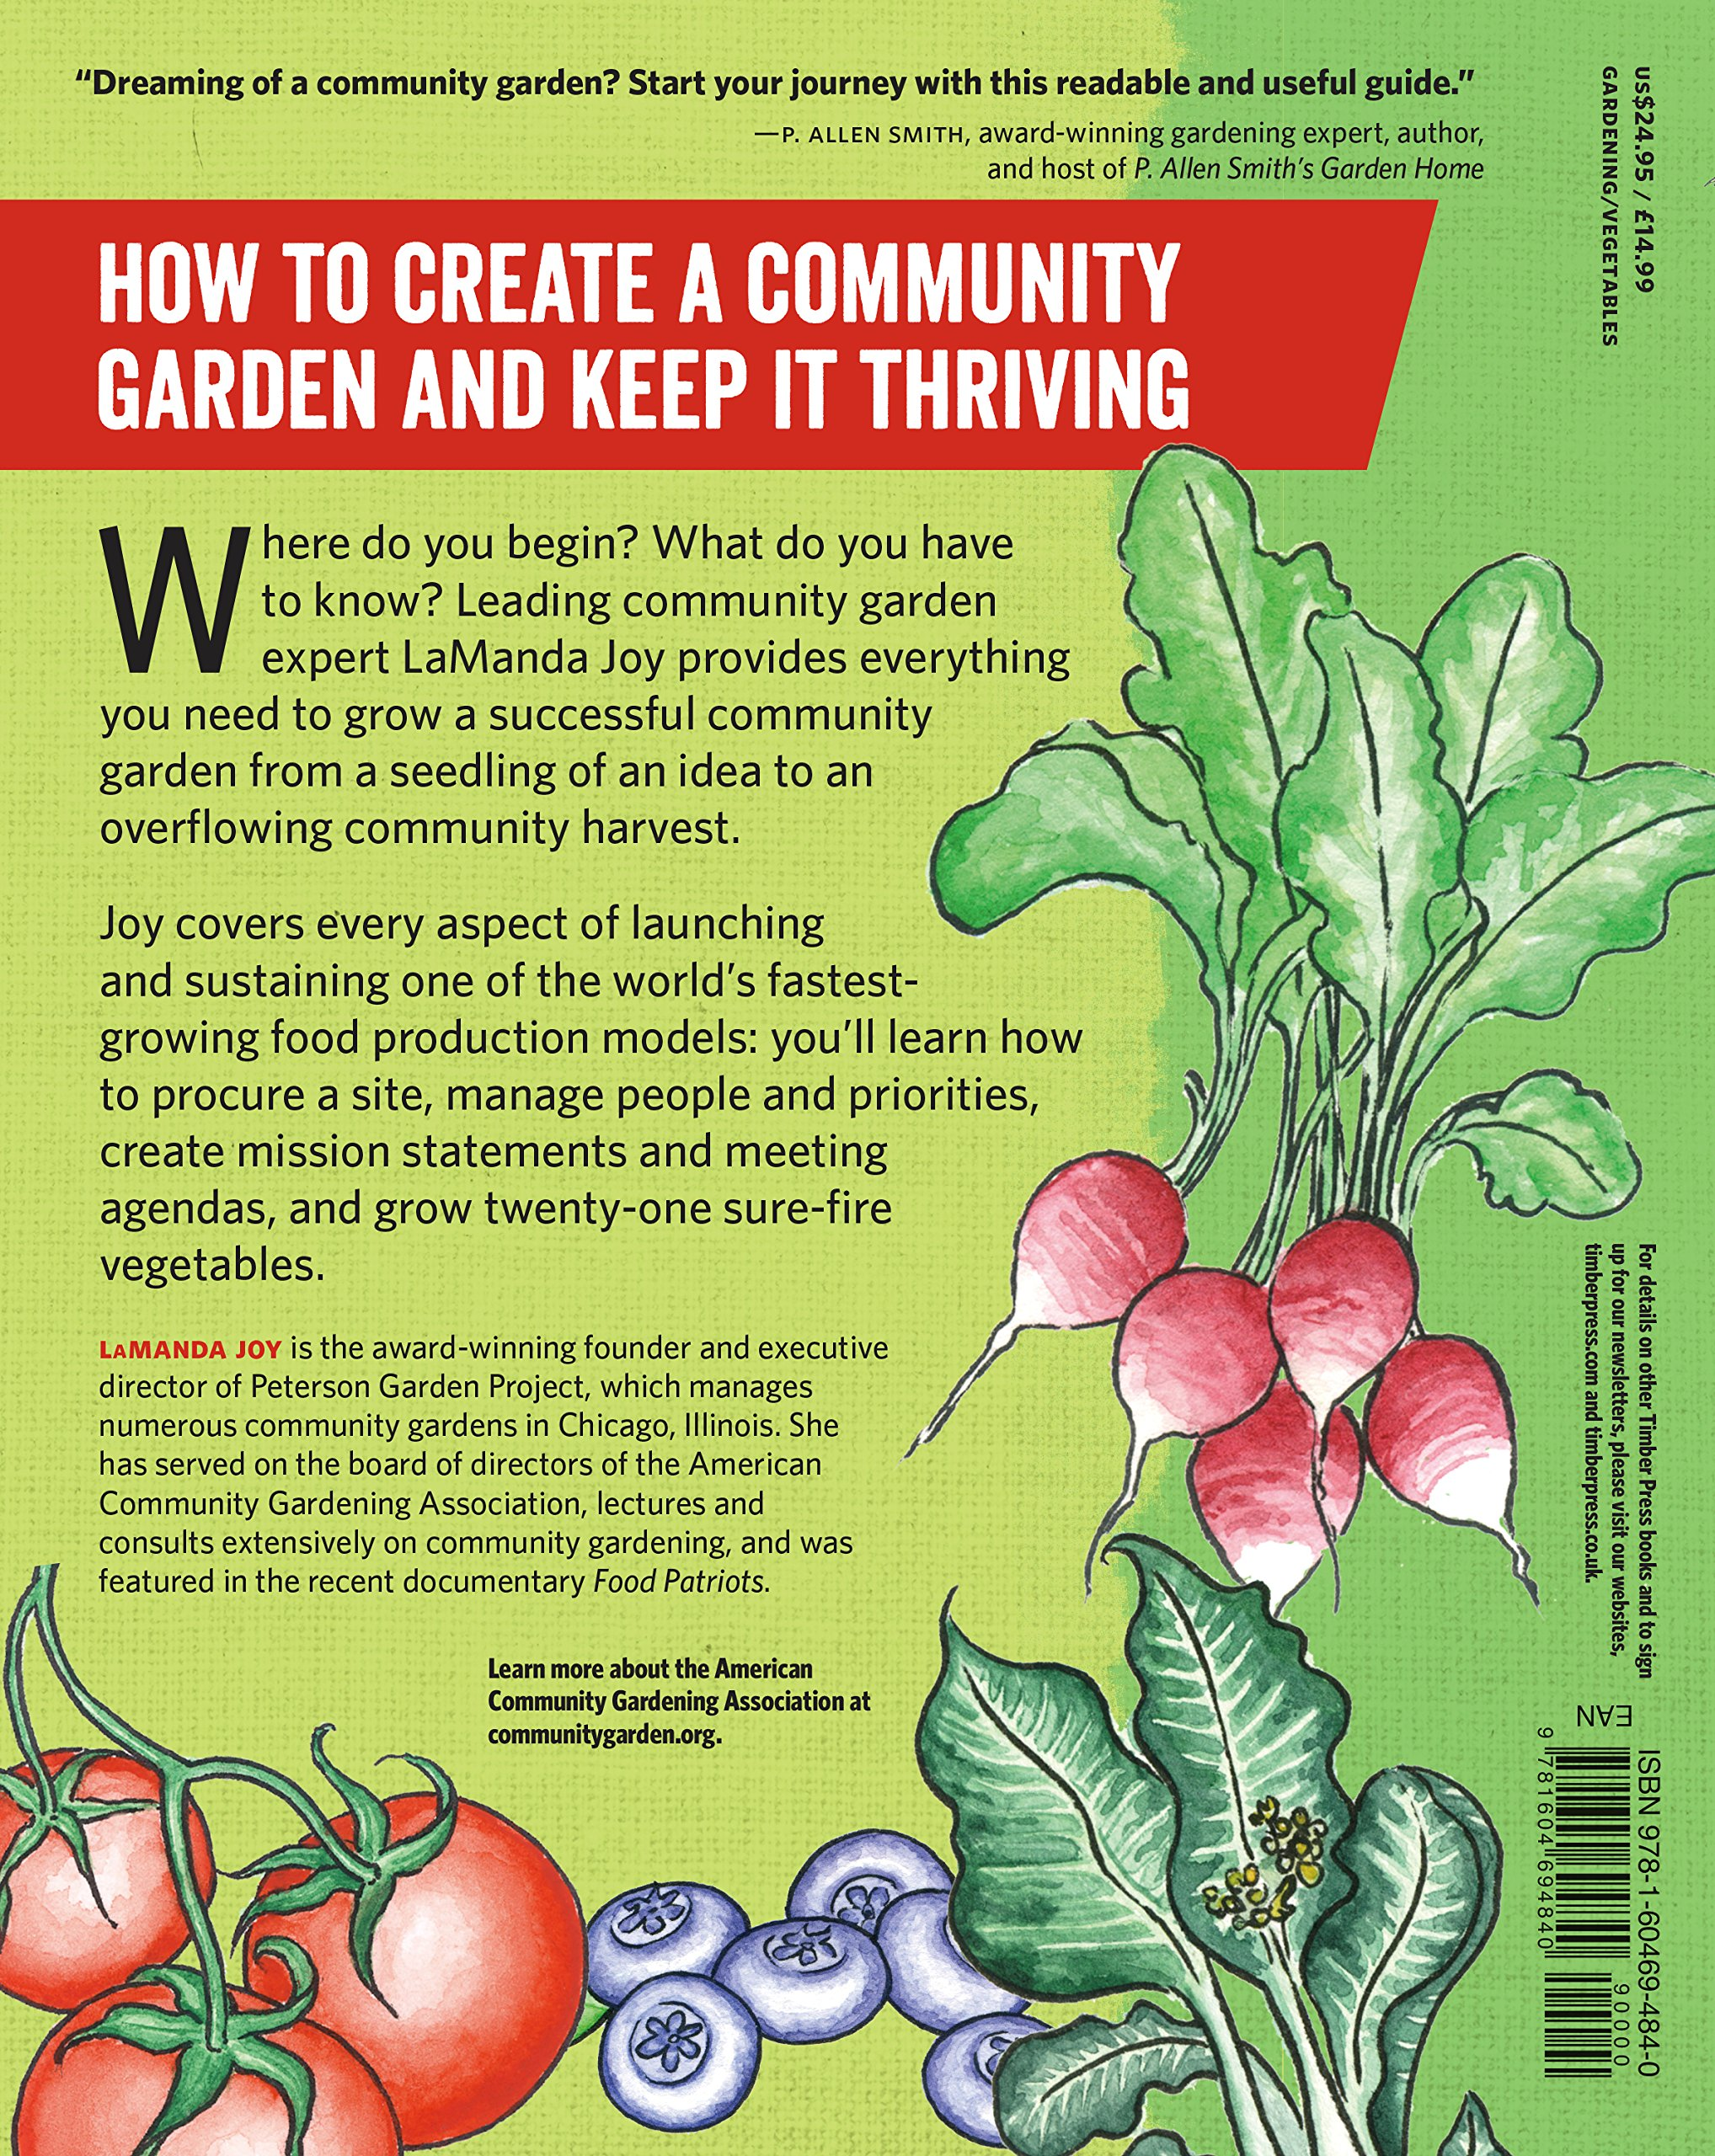 Start A Community Food Garden: The Essential Handbook: LaManda Joy:  9781604694840: Amazon.com: Books